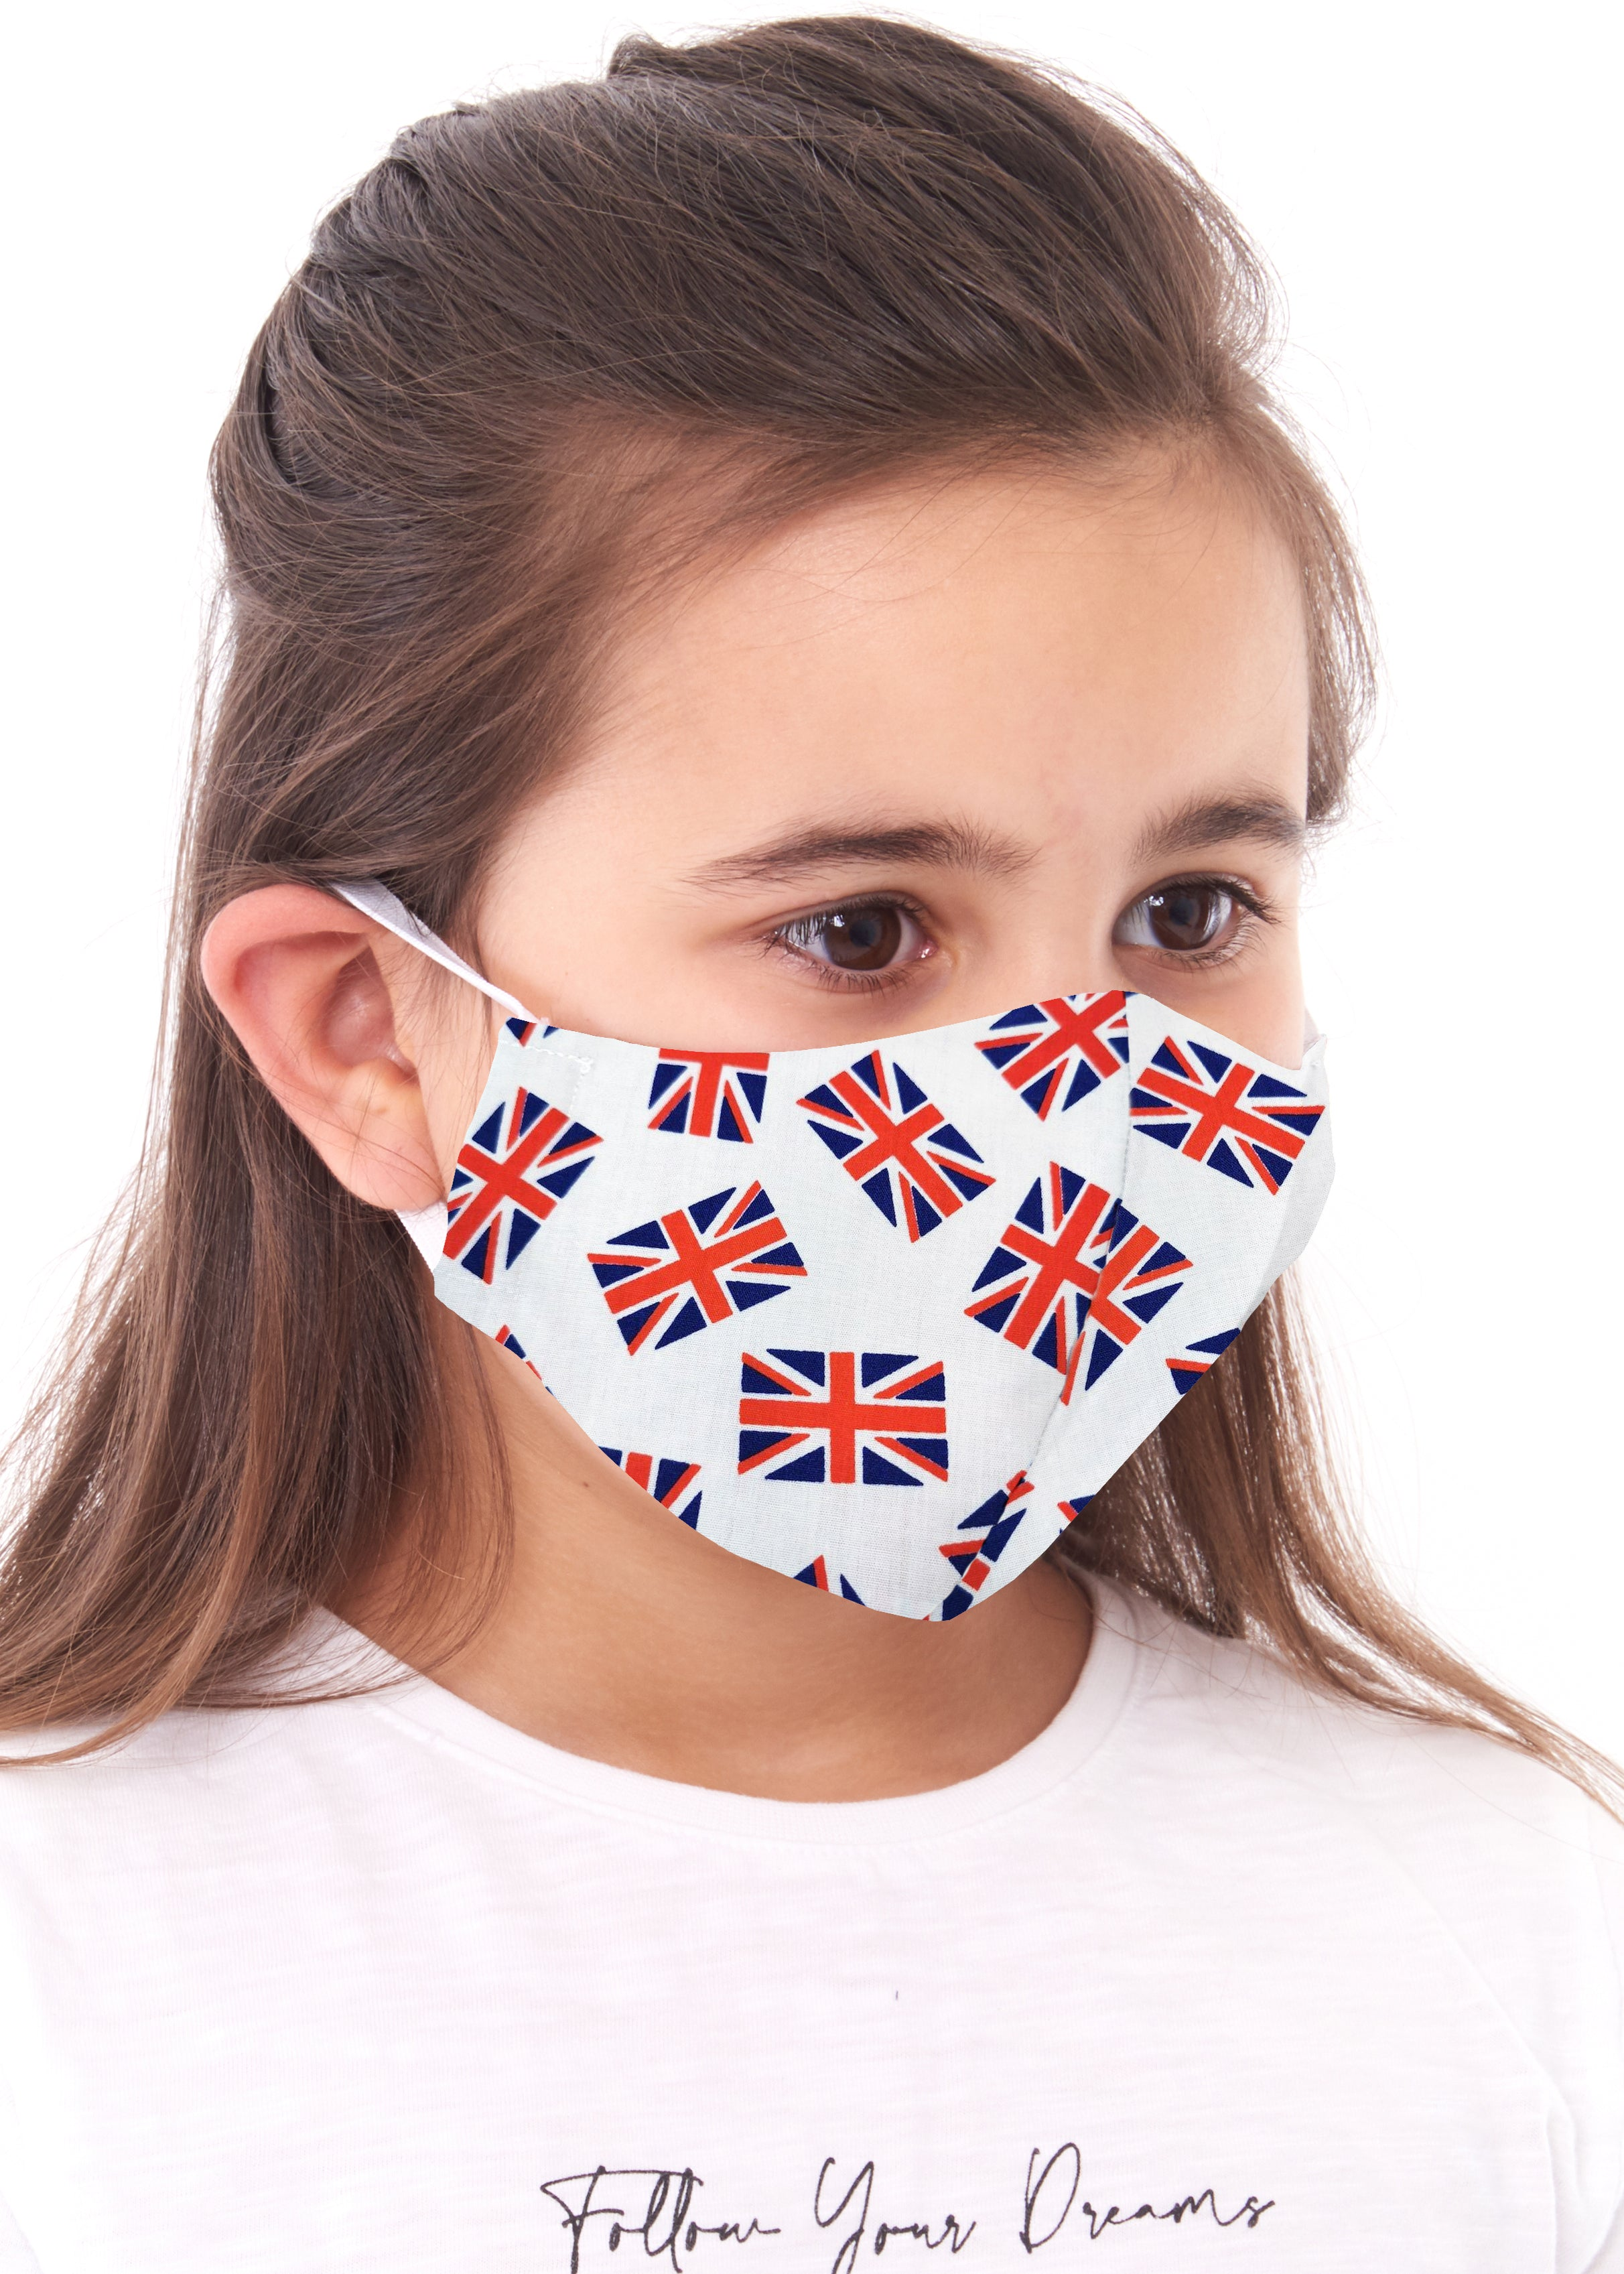 childs union jack charity face mask